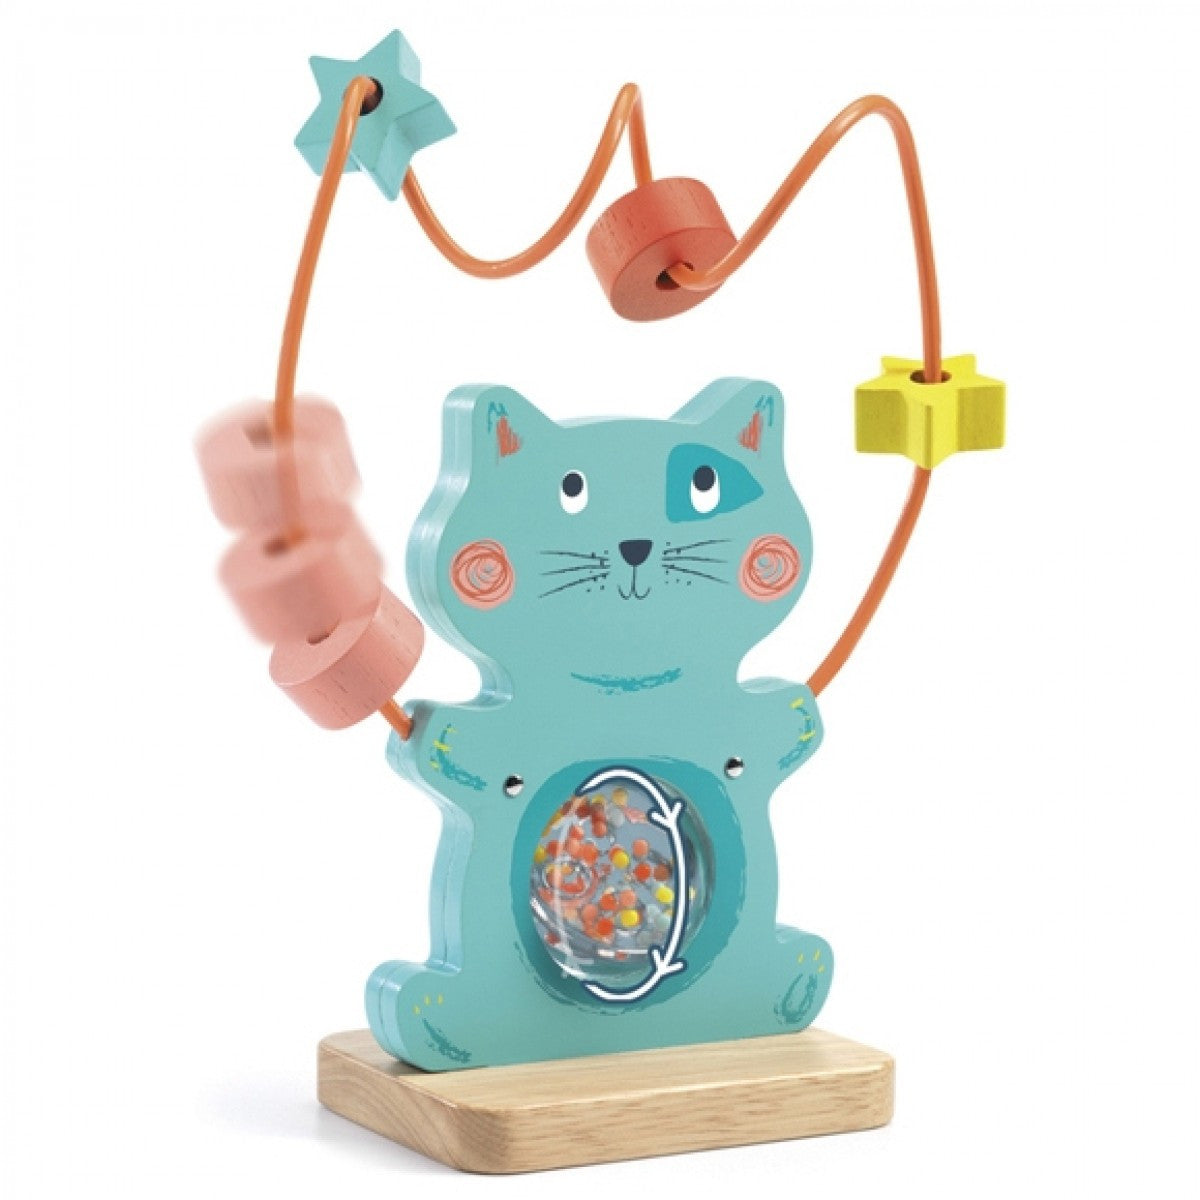 Minty the Cat Early Years Handling Game by Djeco - Little Citizens Boutique